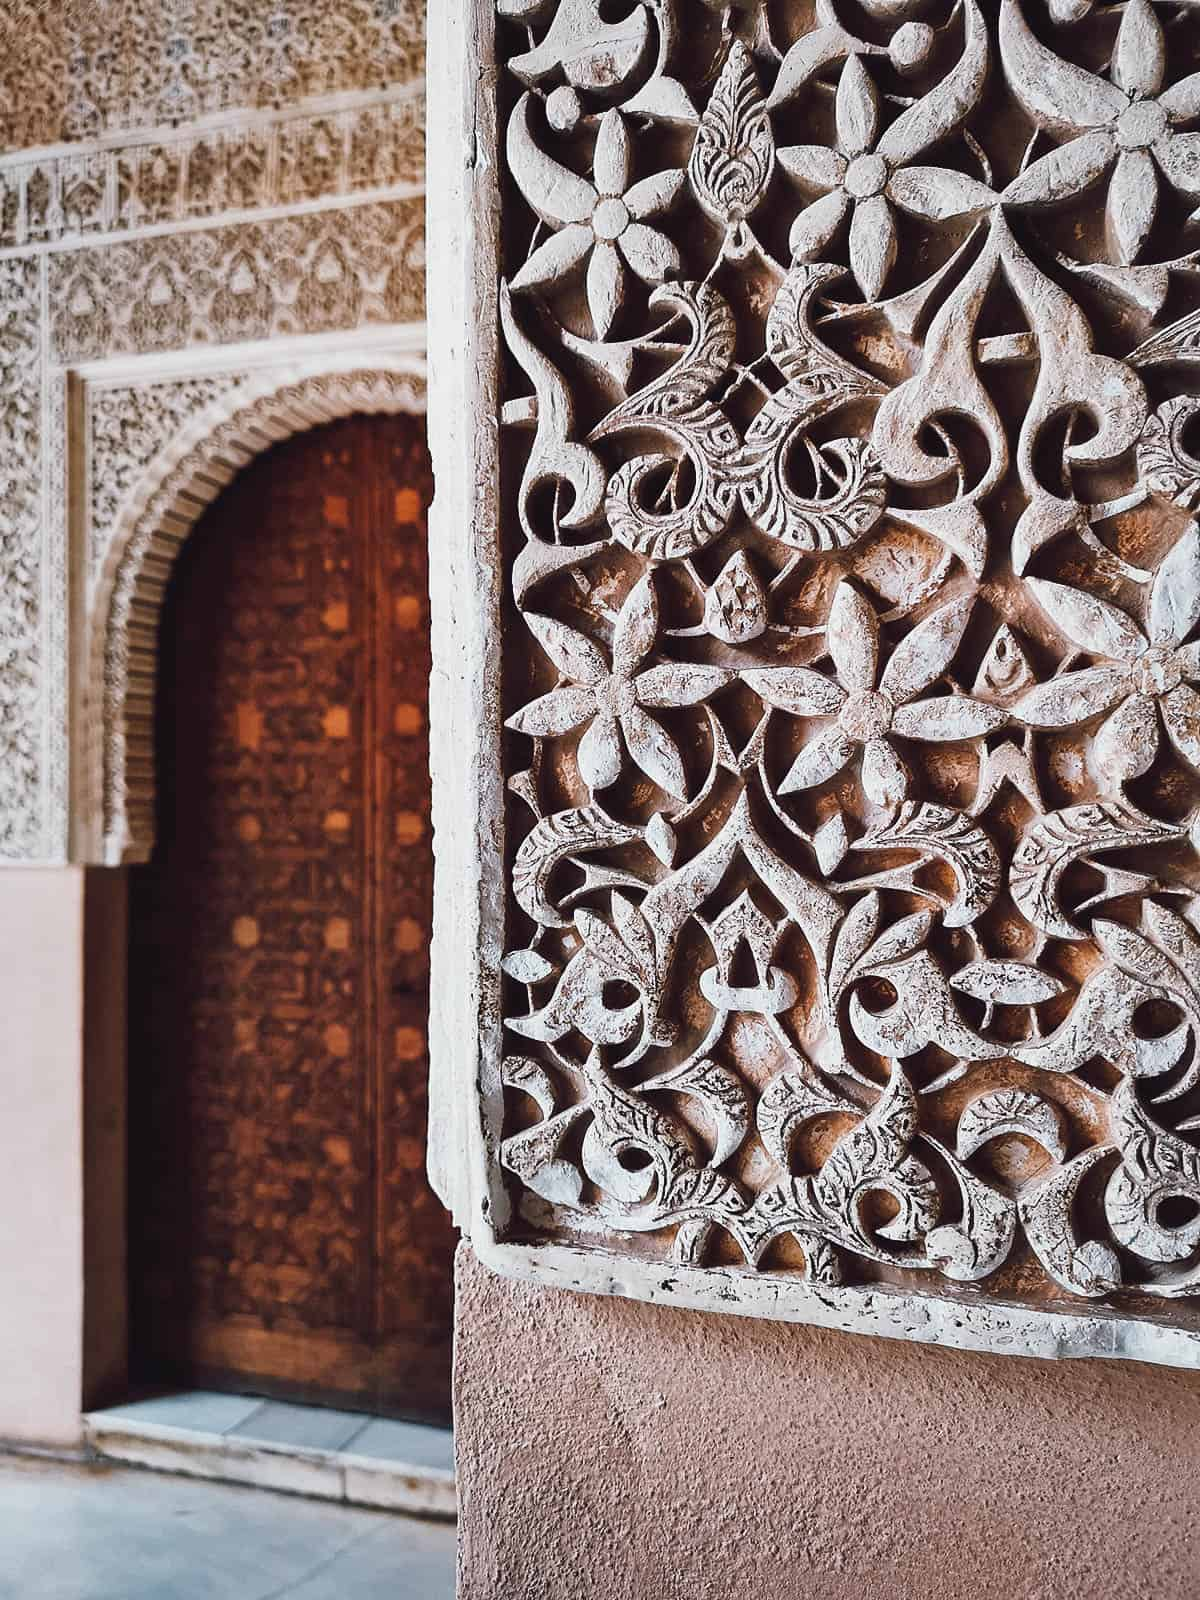 Intricate carvings at Nasrid Palaces